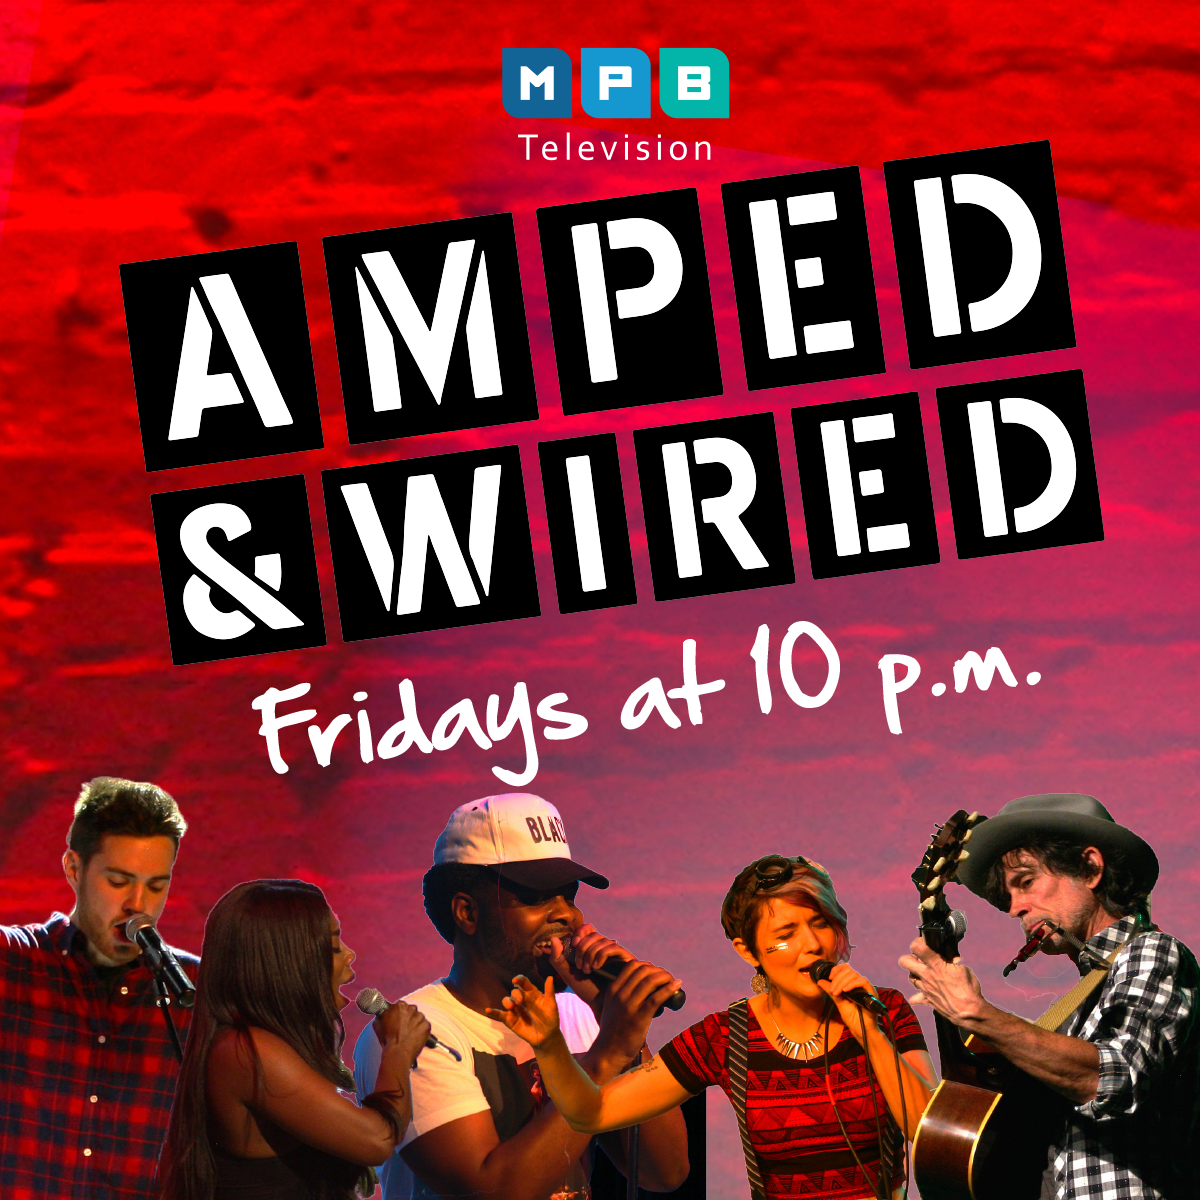 Watch Amped & Wired, Fridays at 10PM on MPB TV.